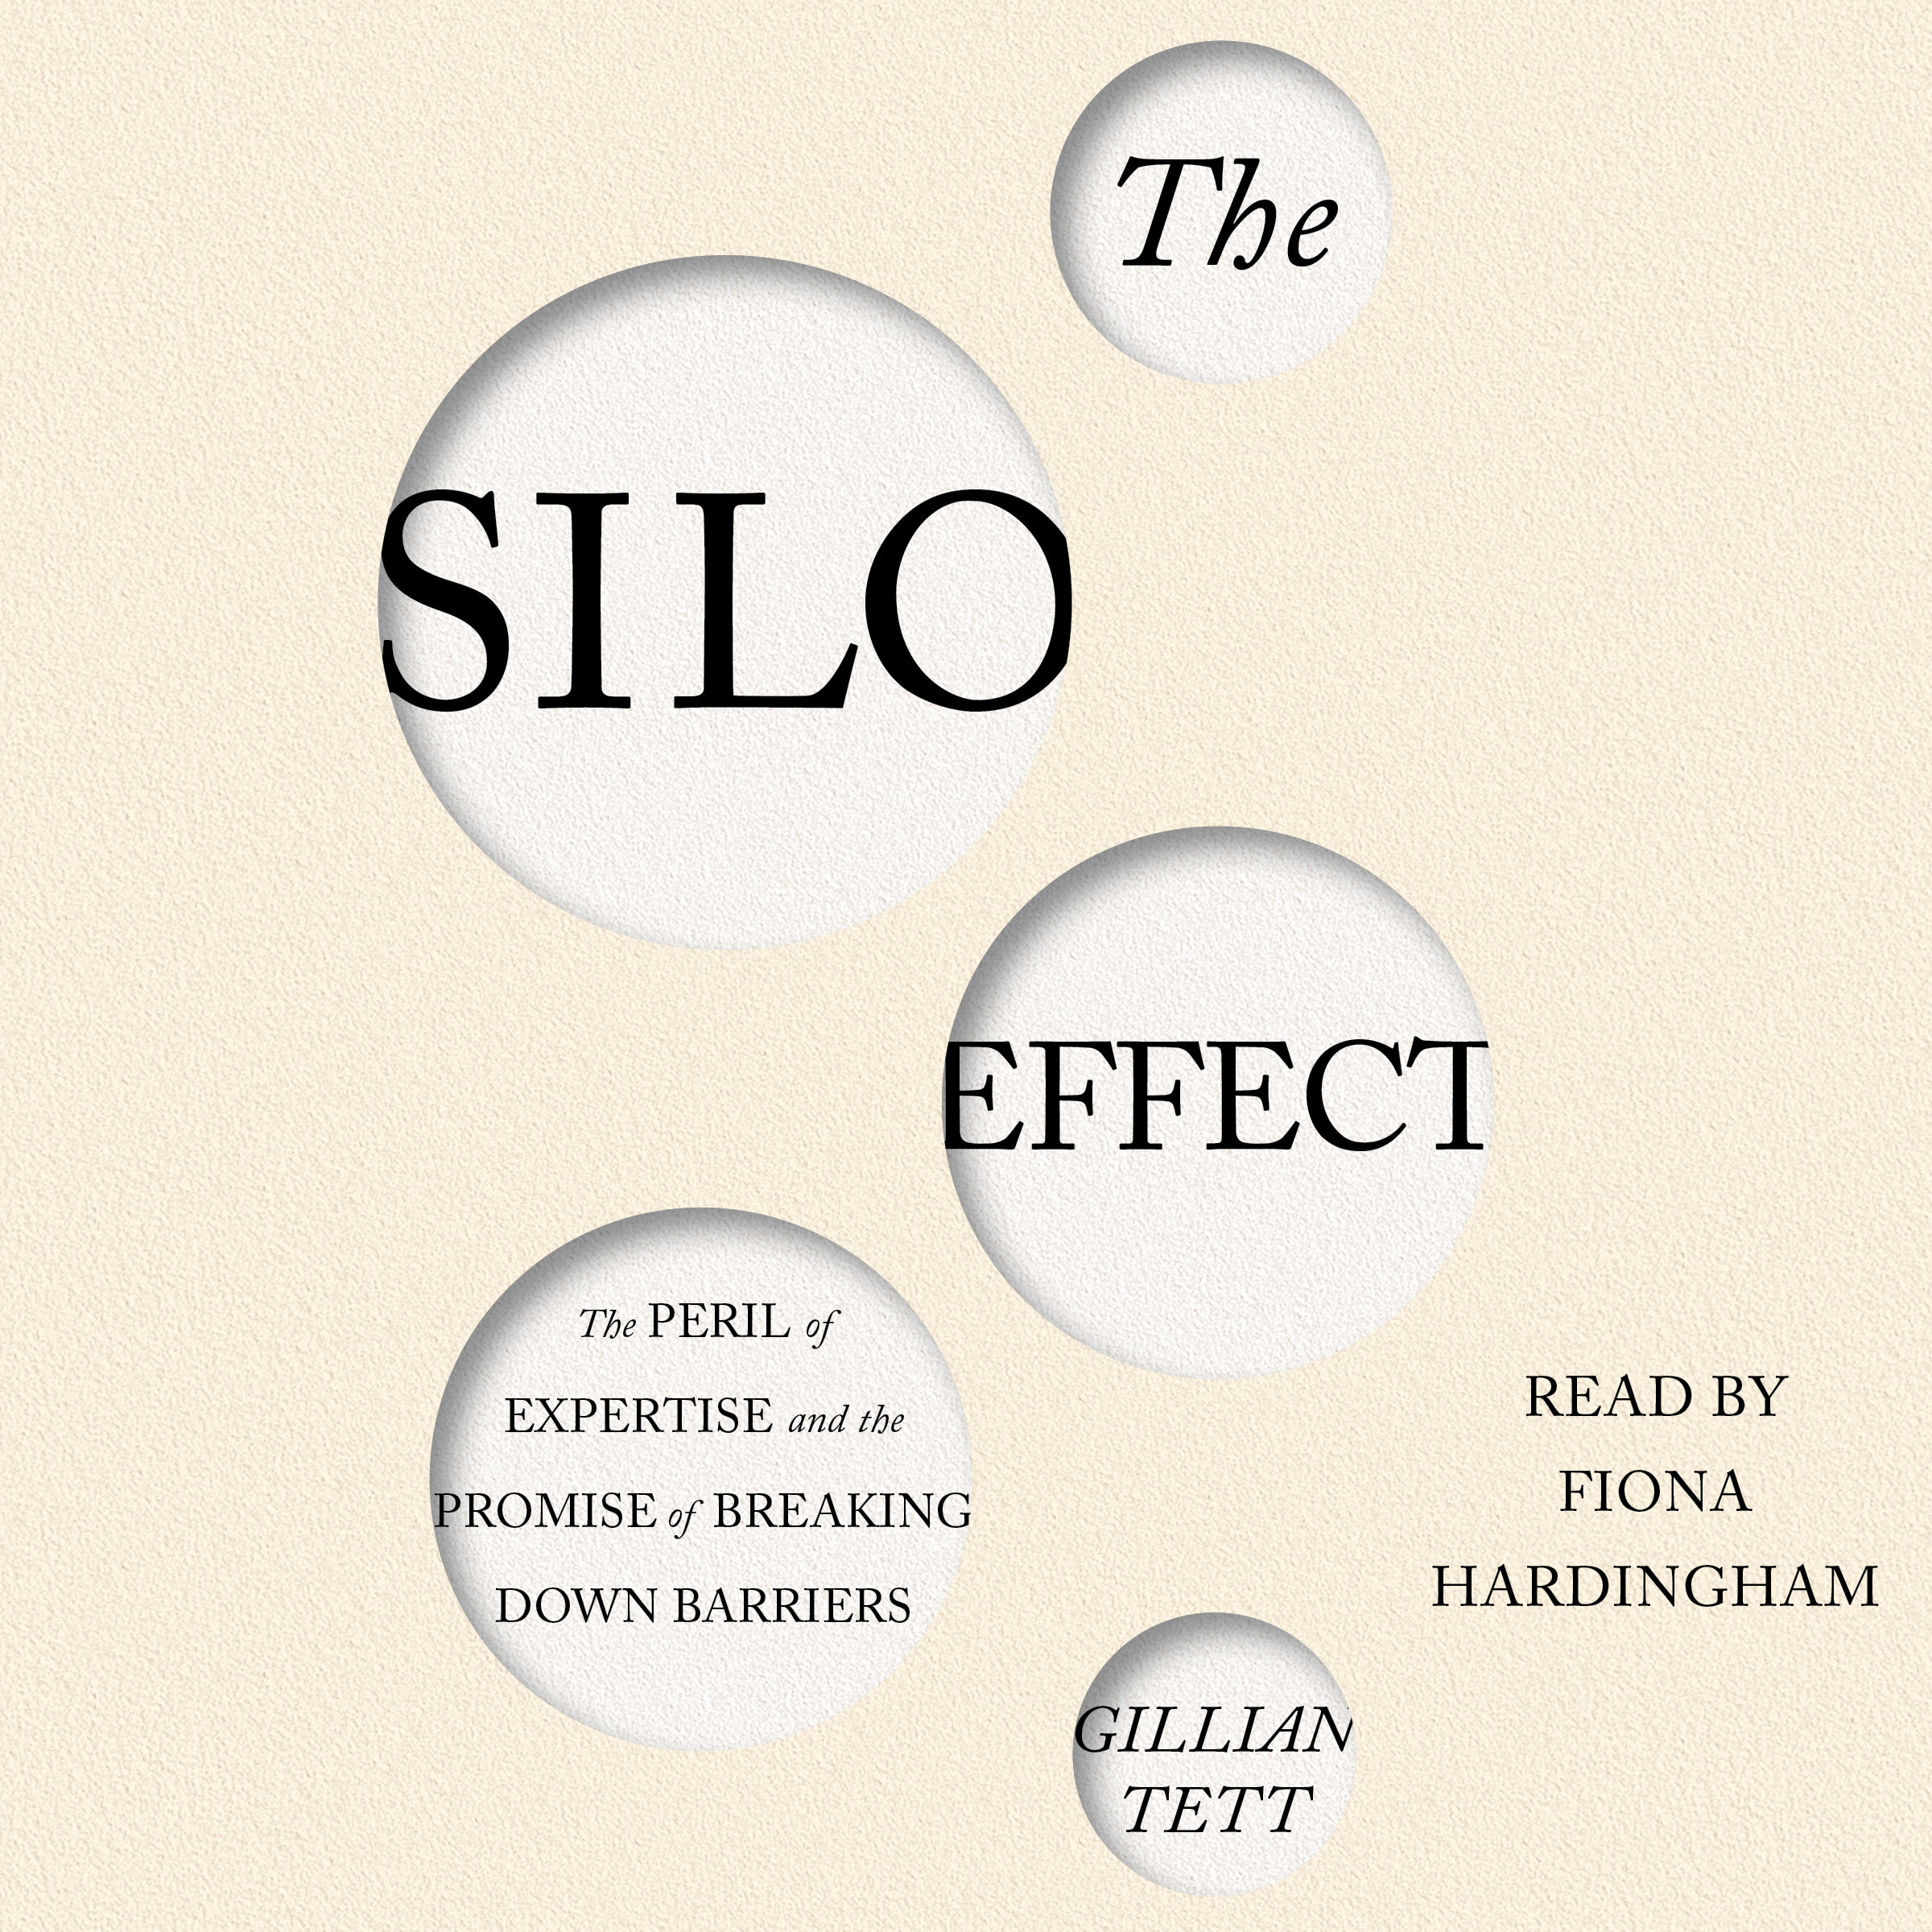 The silo effect 9781442391710 hr